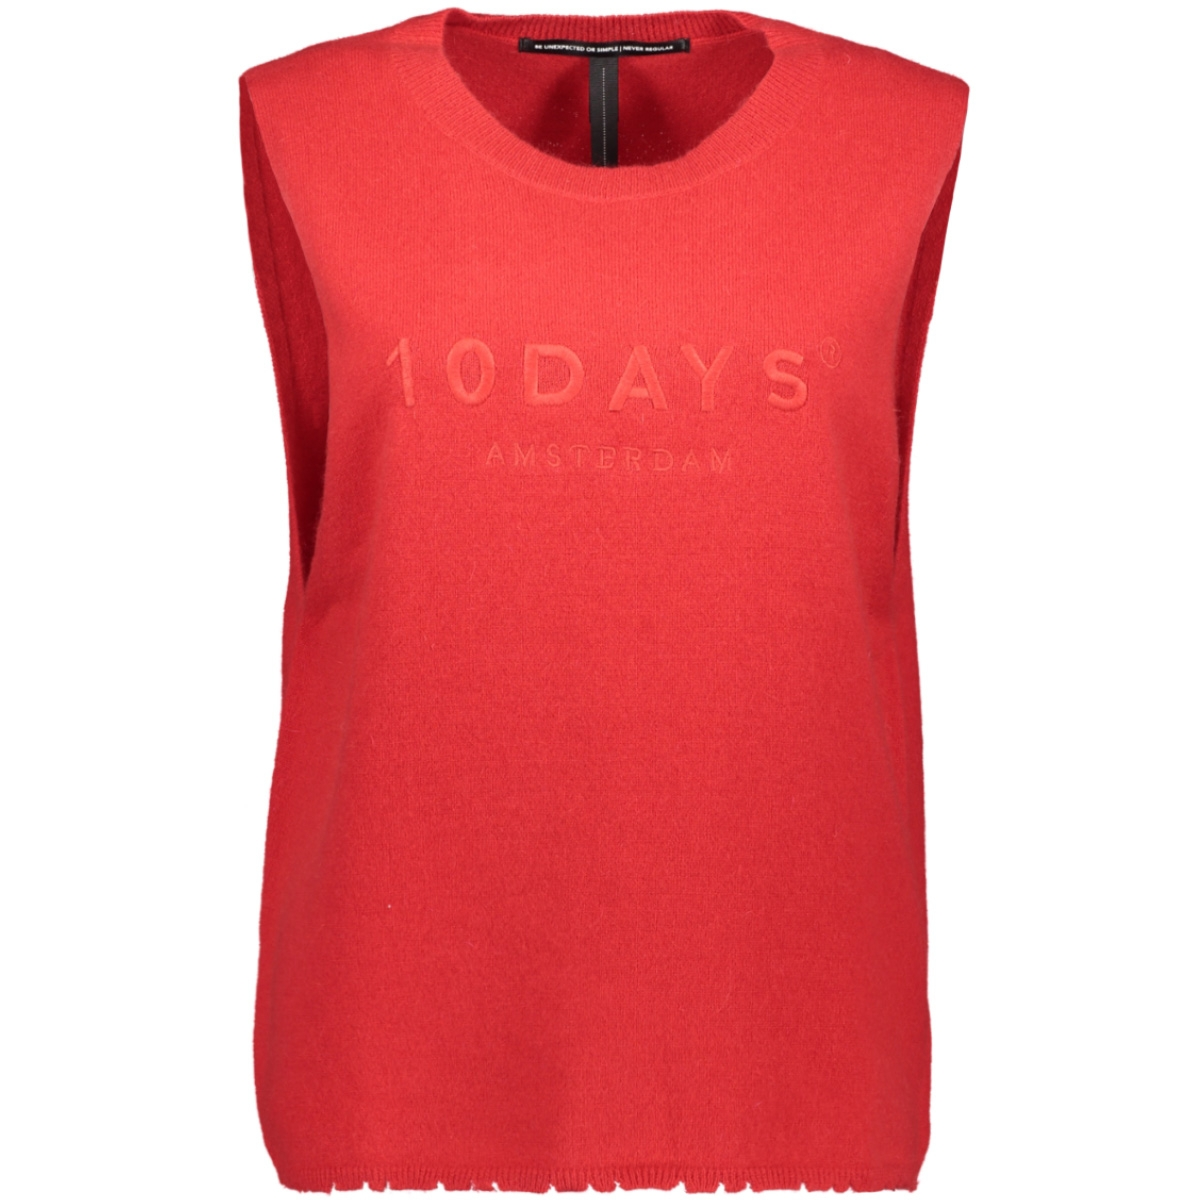 sleeveless sweater 20 602 8103 10 days top fluor red